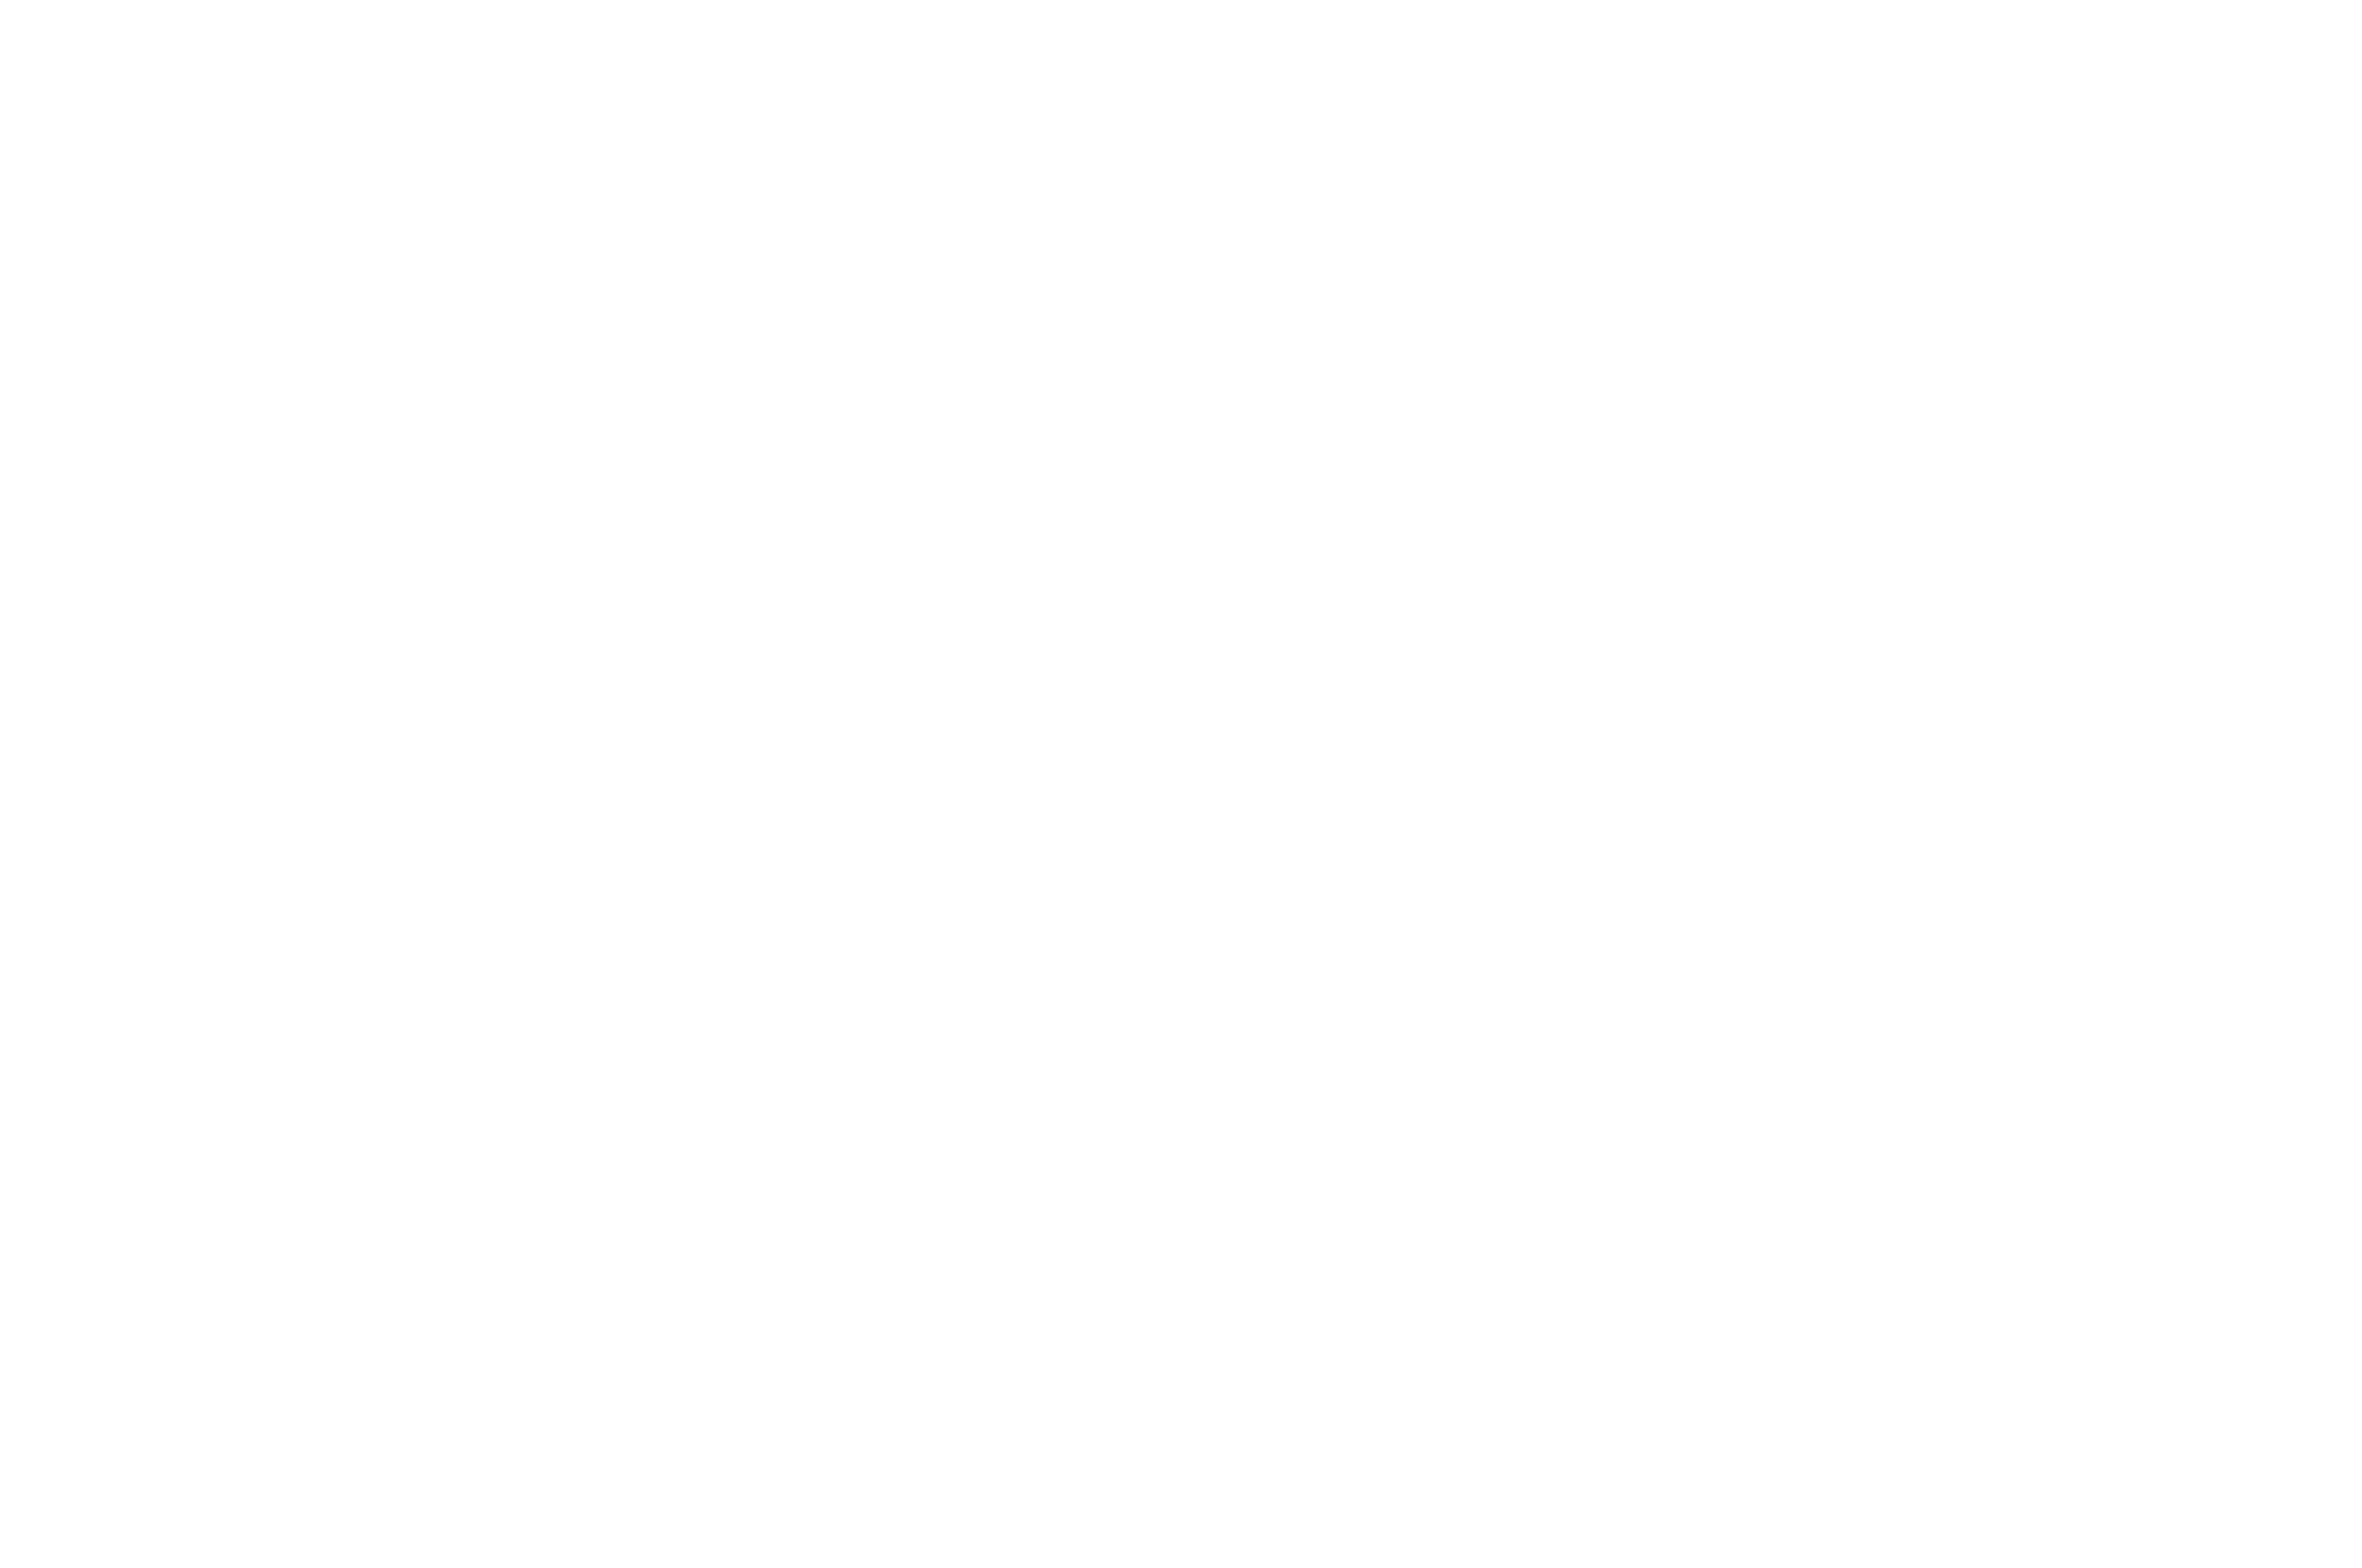 OFFICIALSELECTION-AdirondackFilmFestival-2019 (1).png